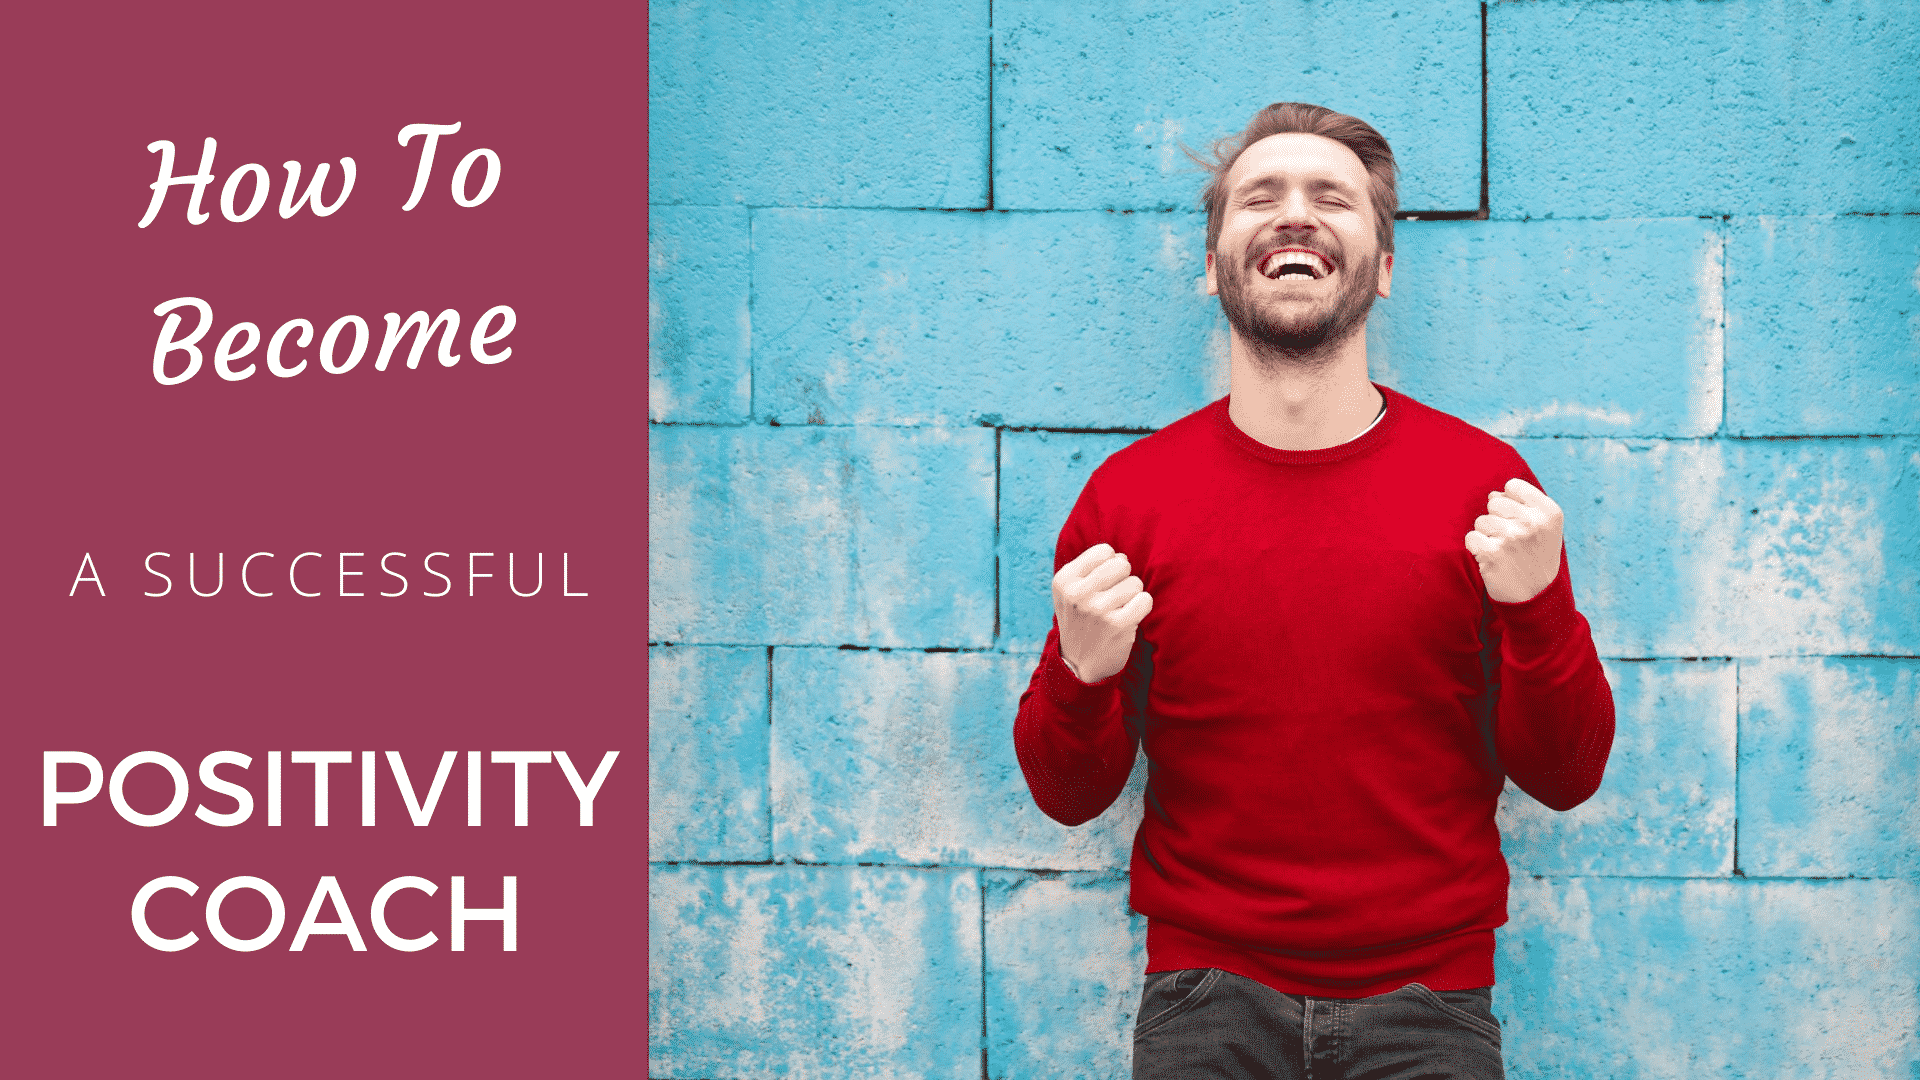 How to Become a Successful Positivity Coach in 2021? Positivity Coach